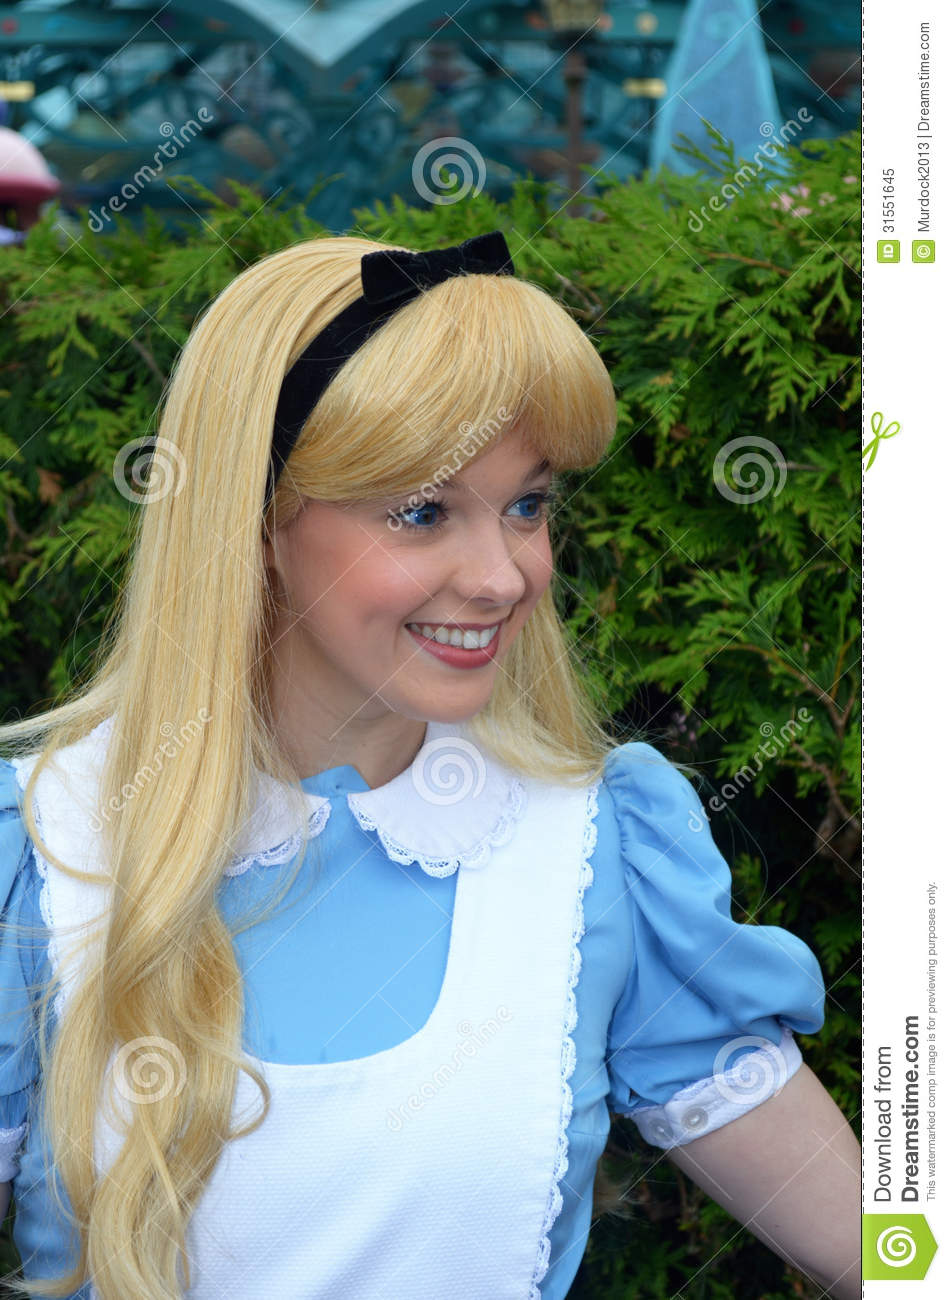 Disney Alice In Wonderland Editorial Image Image Of